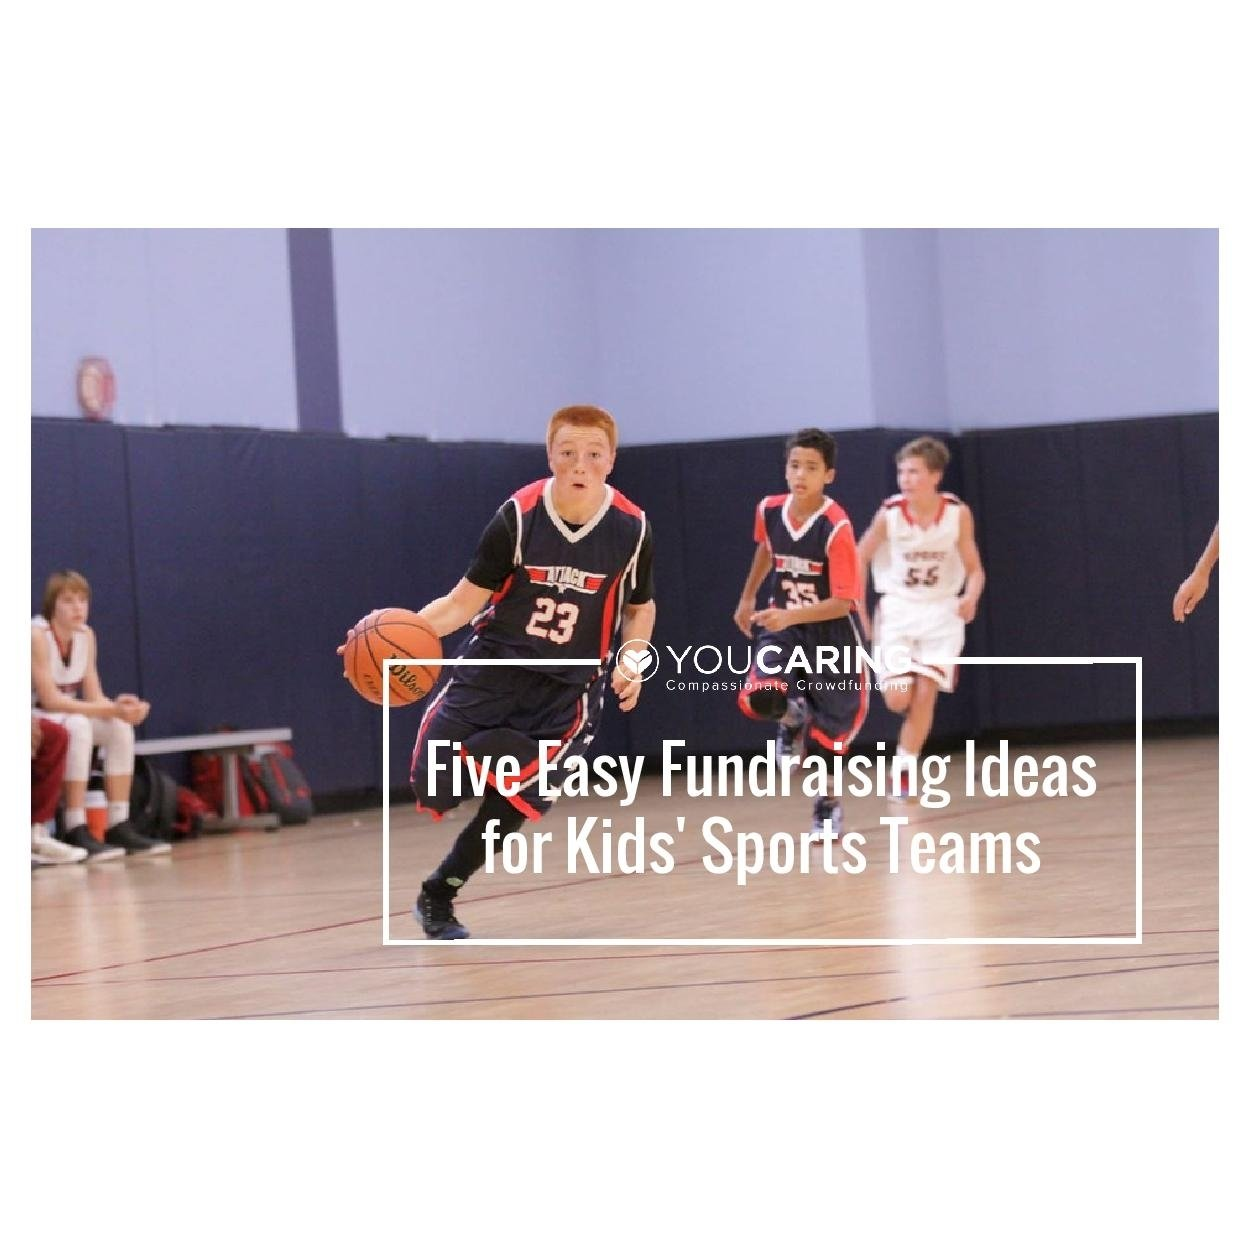 five easy fundraising ideas for kids' sports teams - compassionate